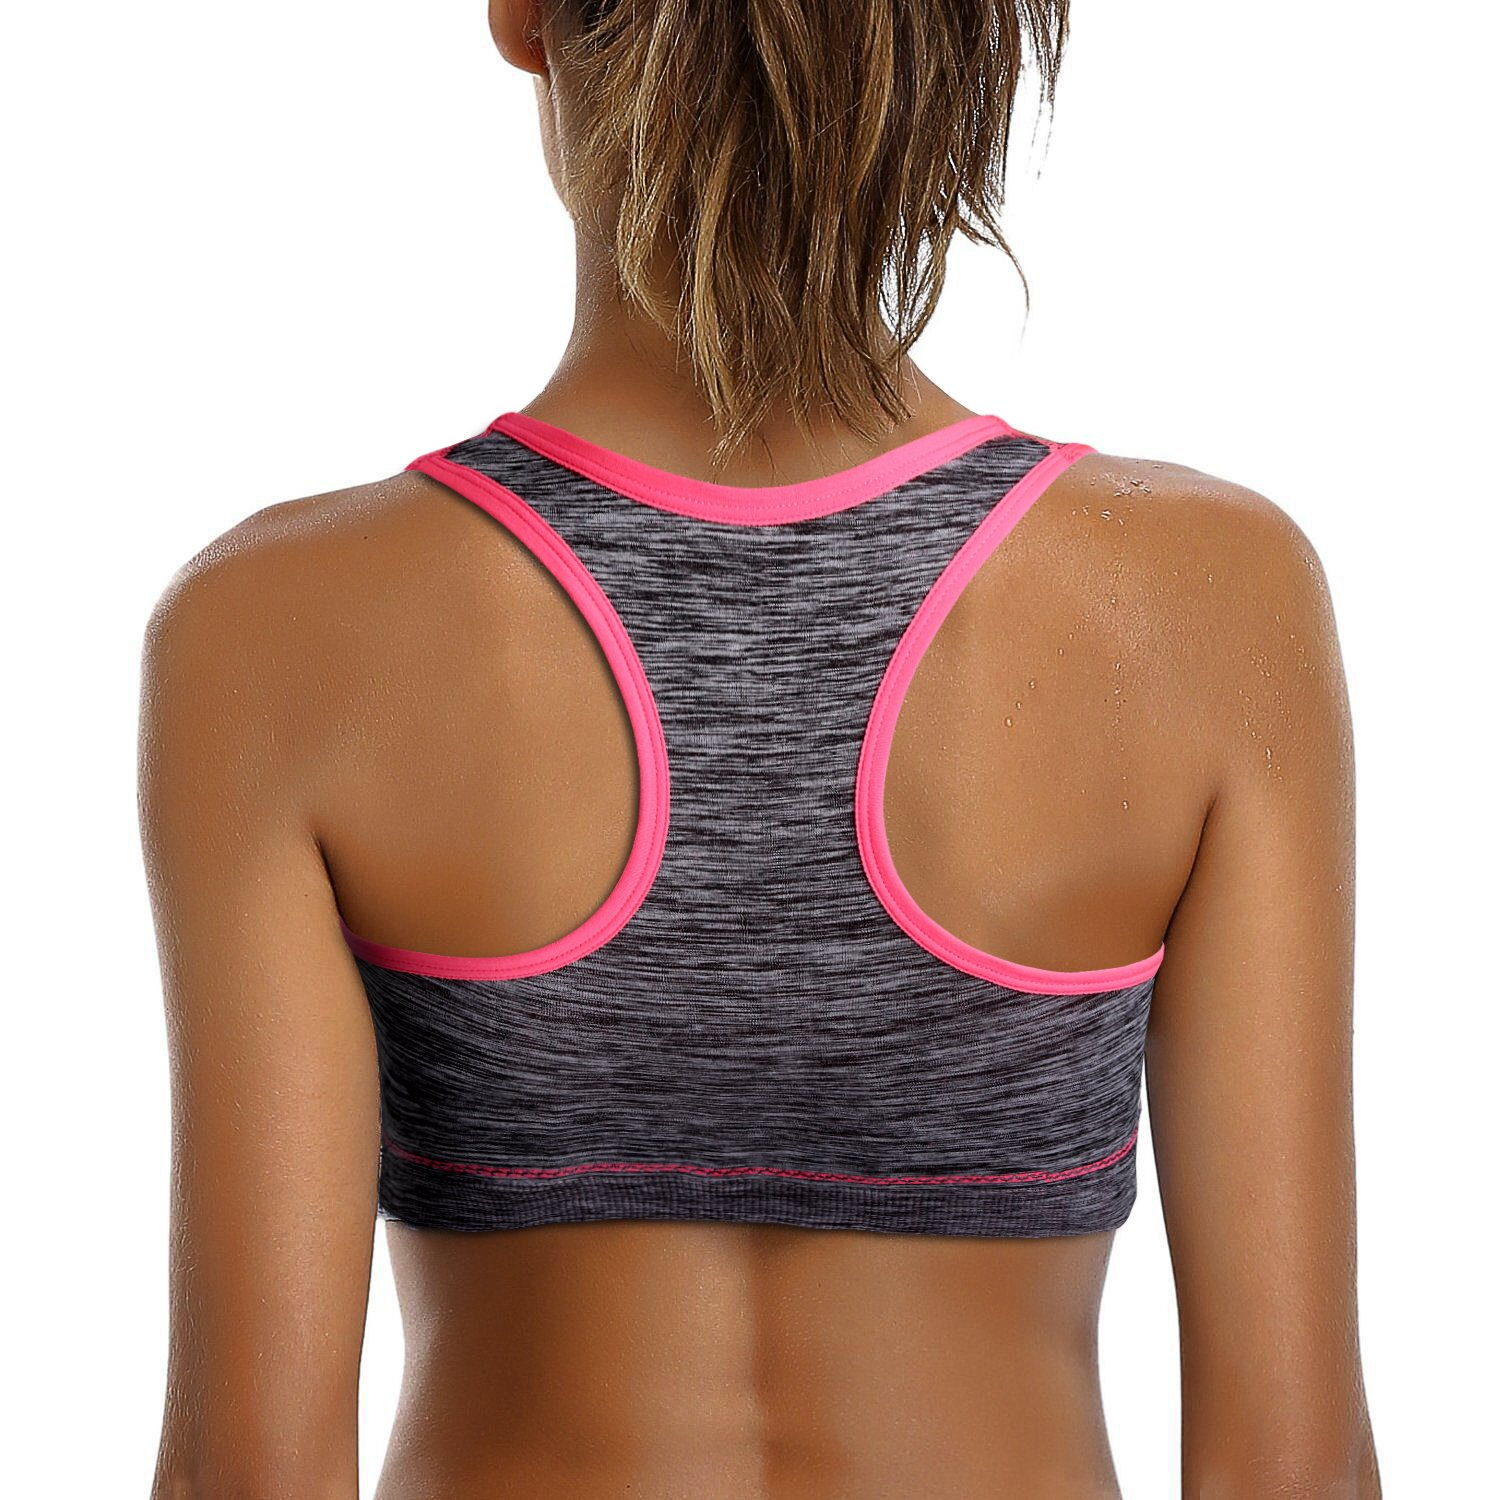 Match Womens Wirefree Padded Racerback Sports Bra for Yoga Workout Gym Activewear #007